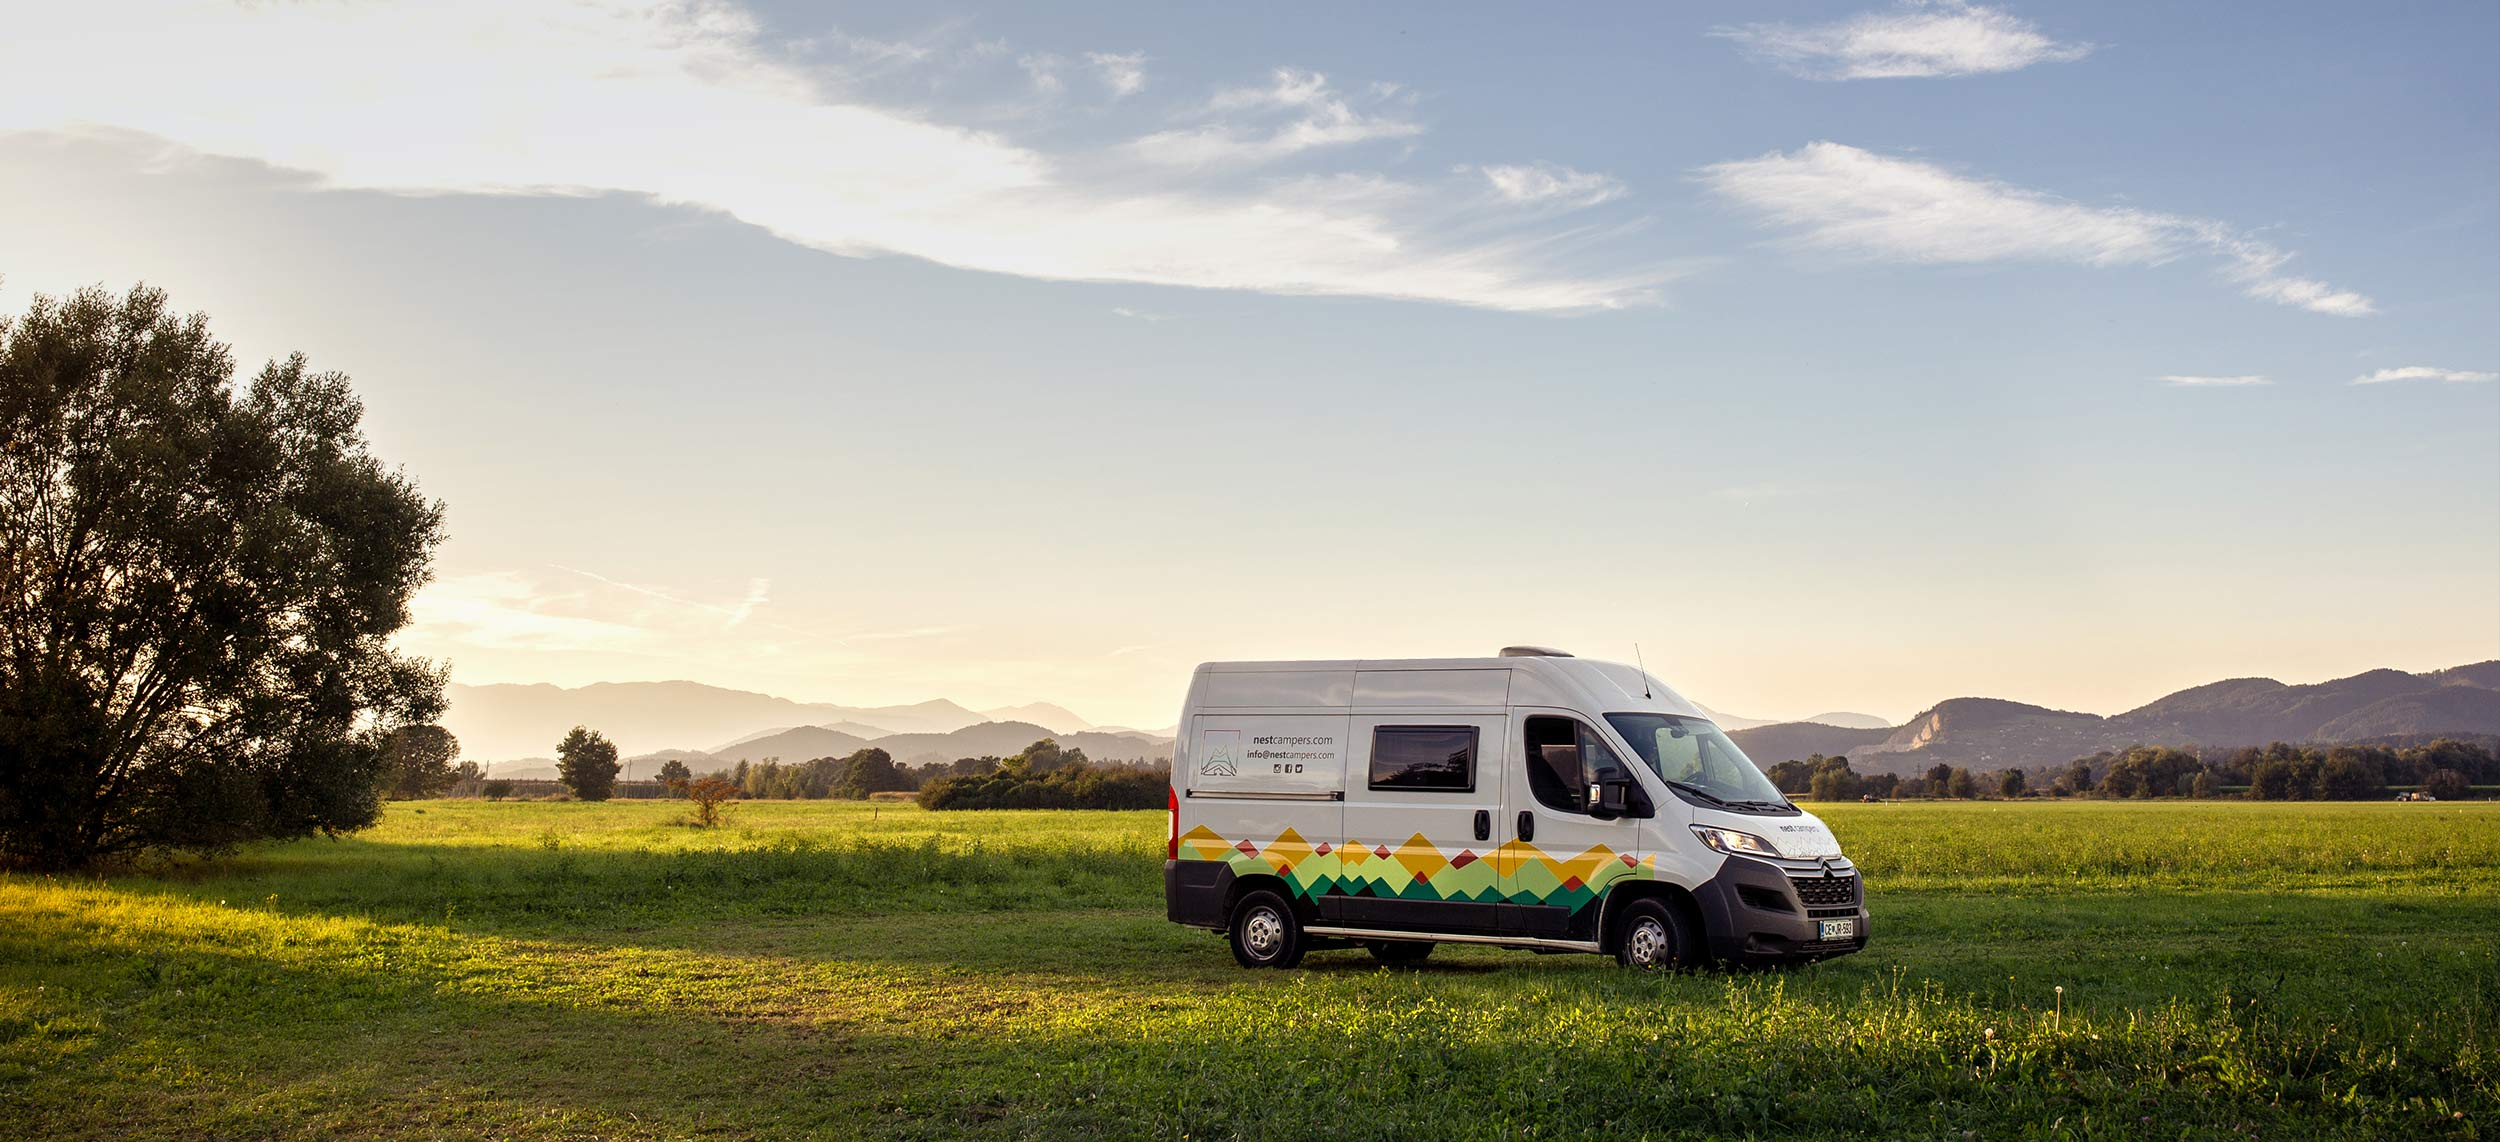 Road trip to discover Slovenia with a campervan